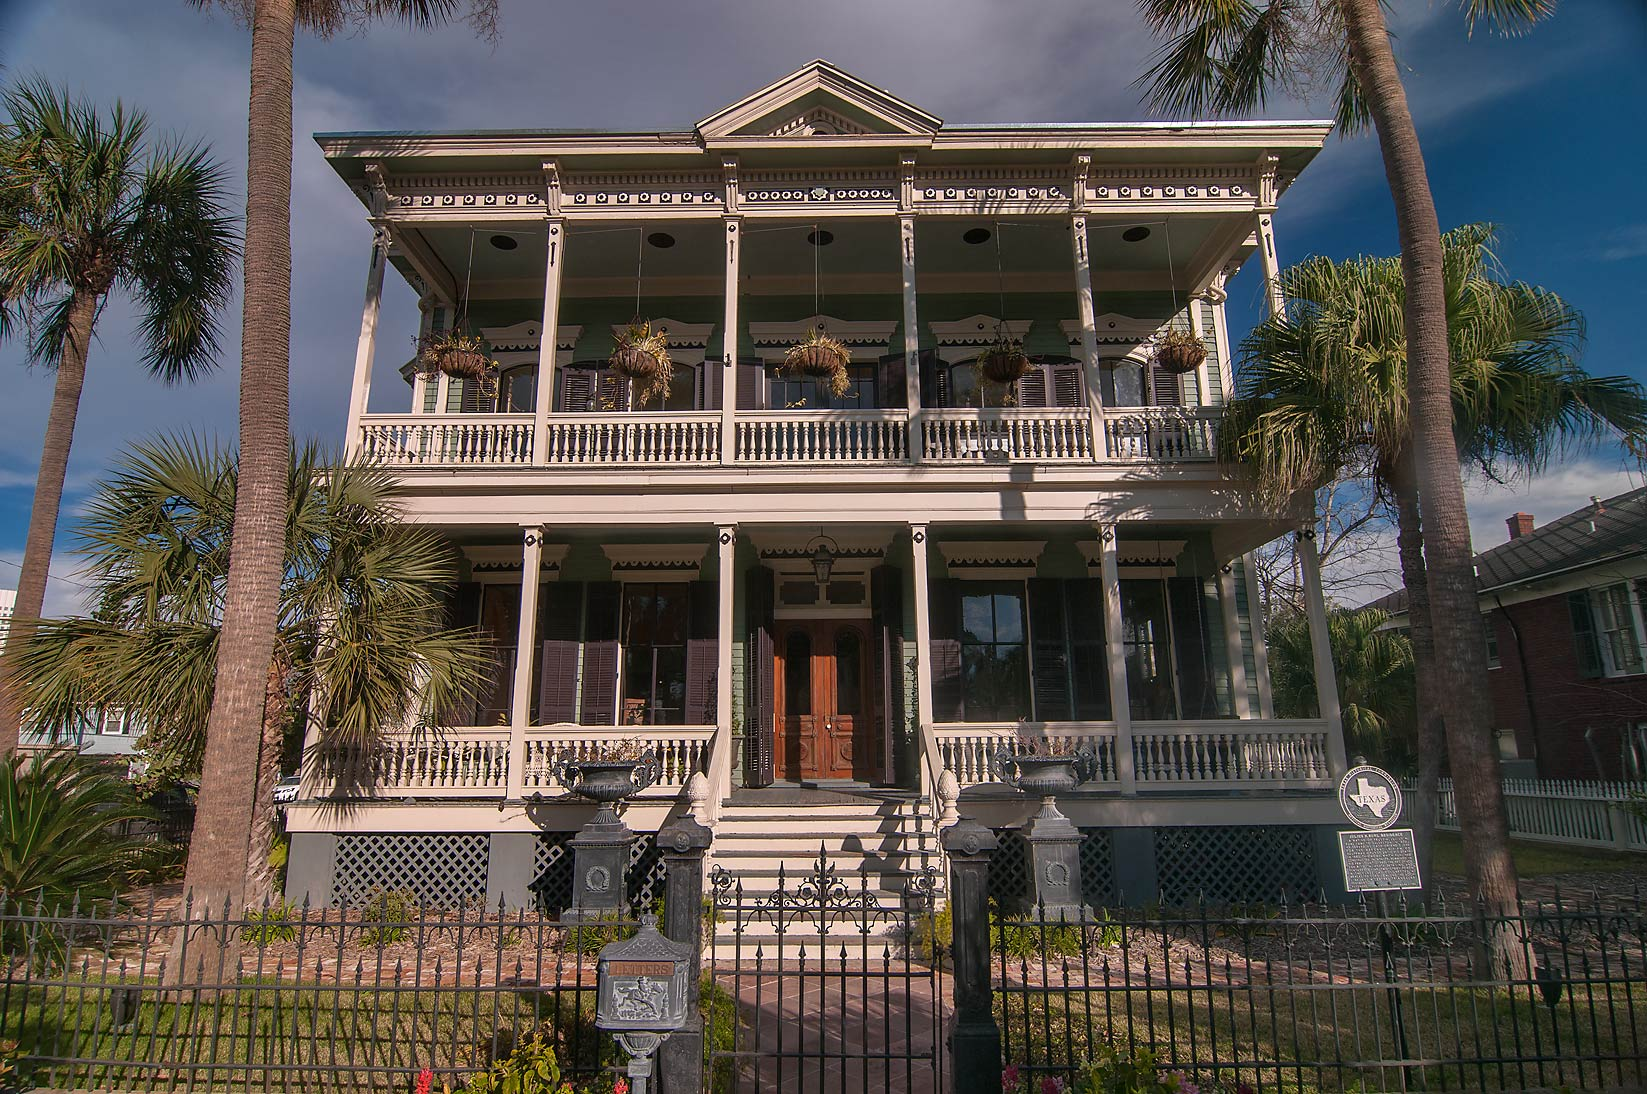 Julius H. Ruhl Residence at 1412 Sealy Ave. in...Historic District. Galveston, Texas